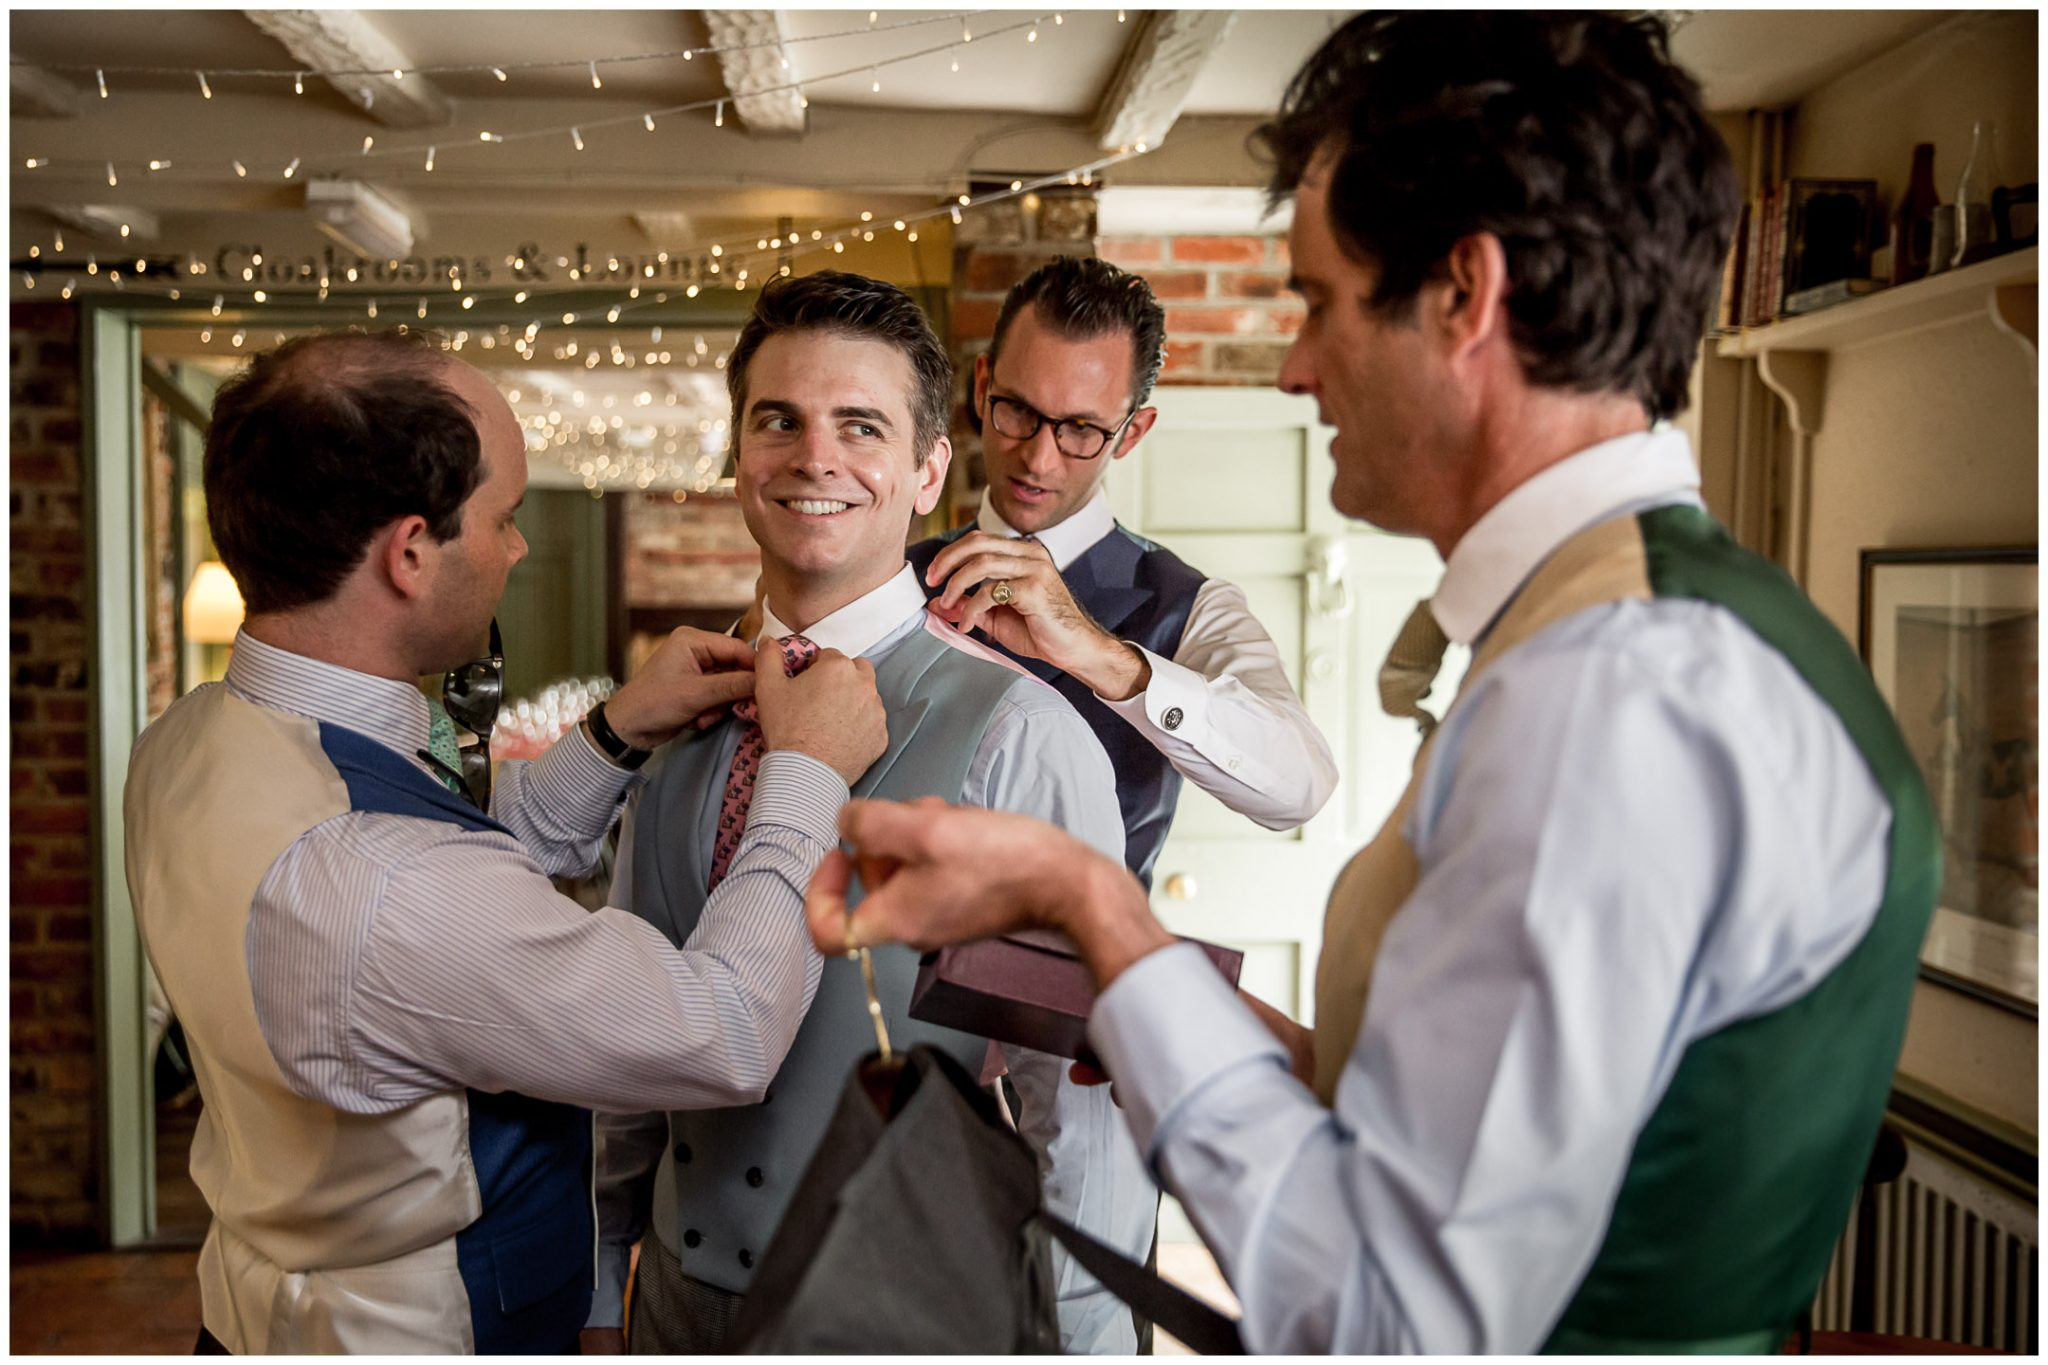 Best man and yshers help the groom to get ready for the wedding